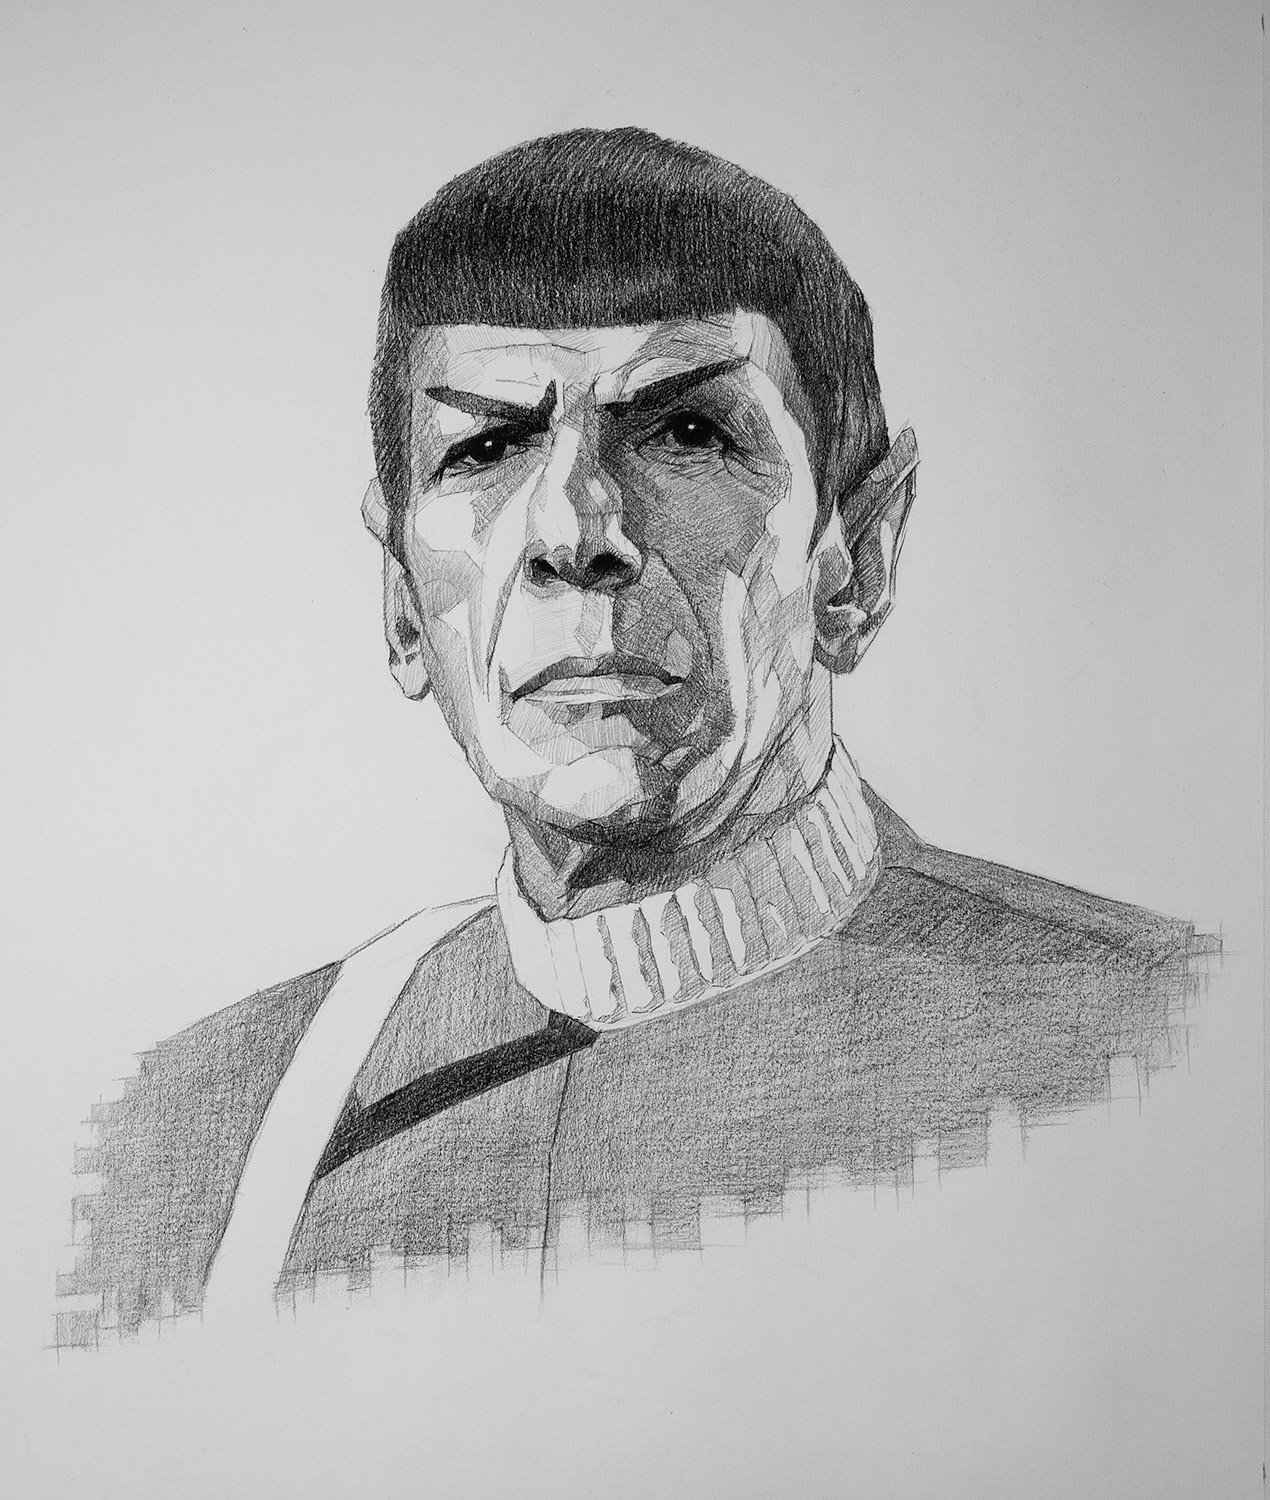 Spock by Chris Beaven